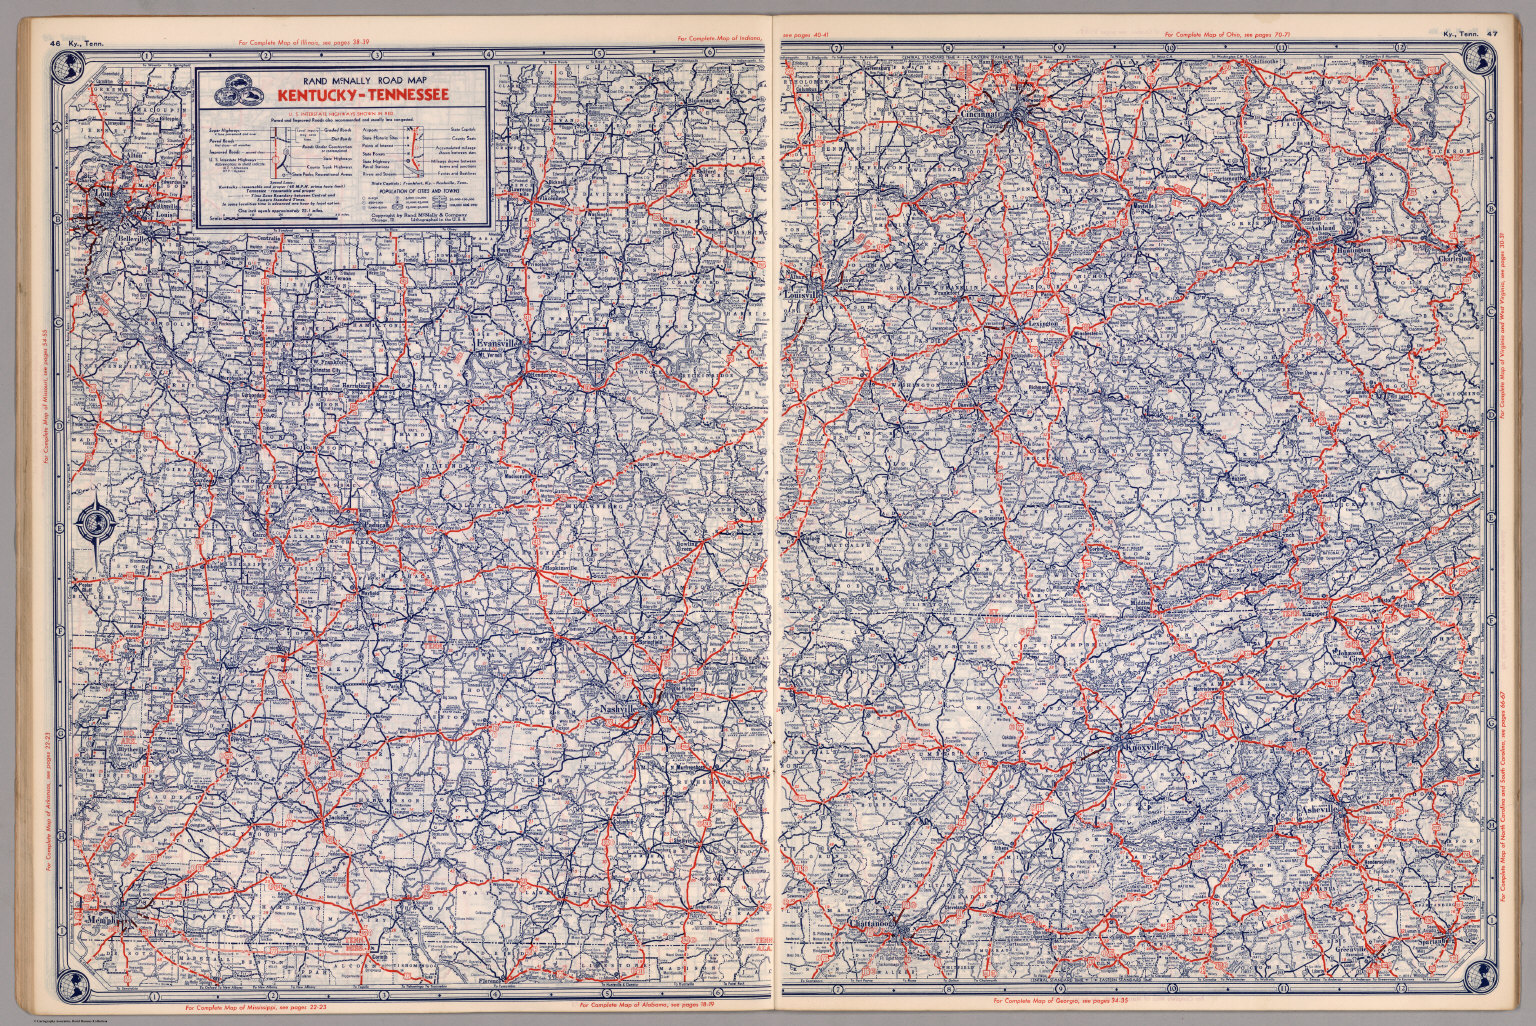 Road map of Kentucky-Tennessee - David Rumsey Historical Map Collection